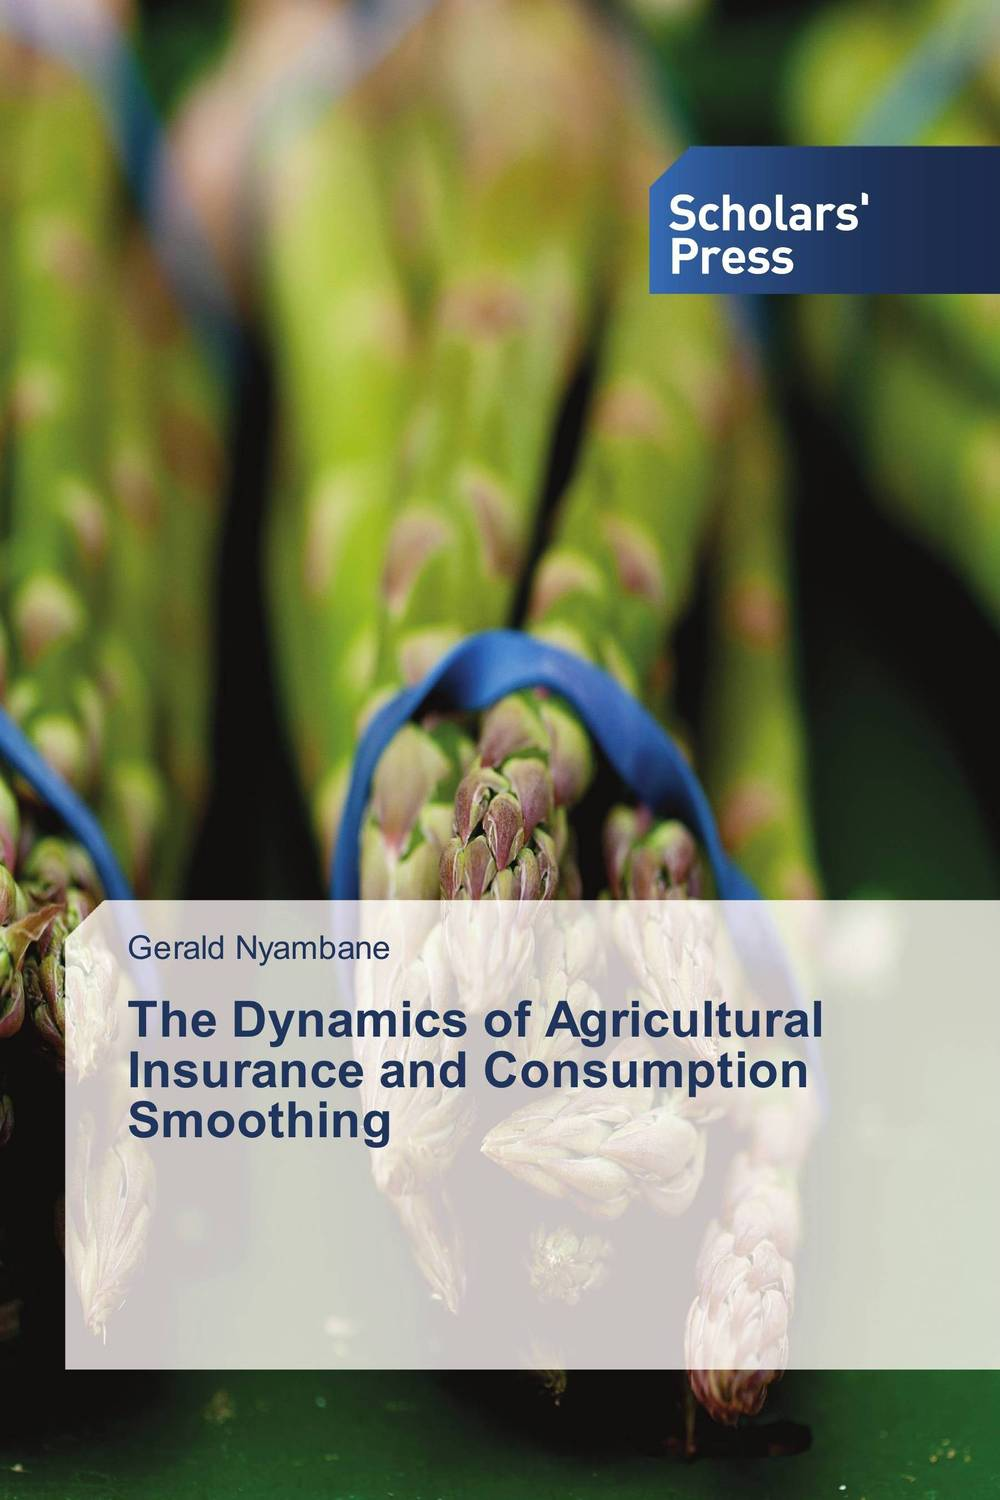 The Dynamics of Agricultural Insurance and Consumption Smoothing